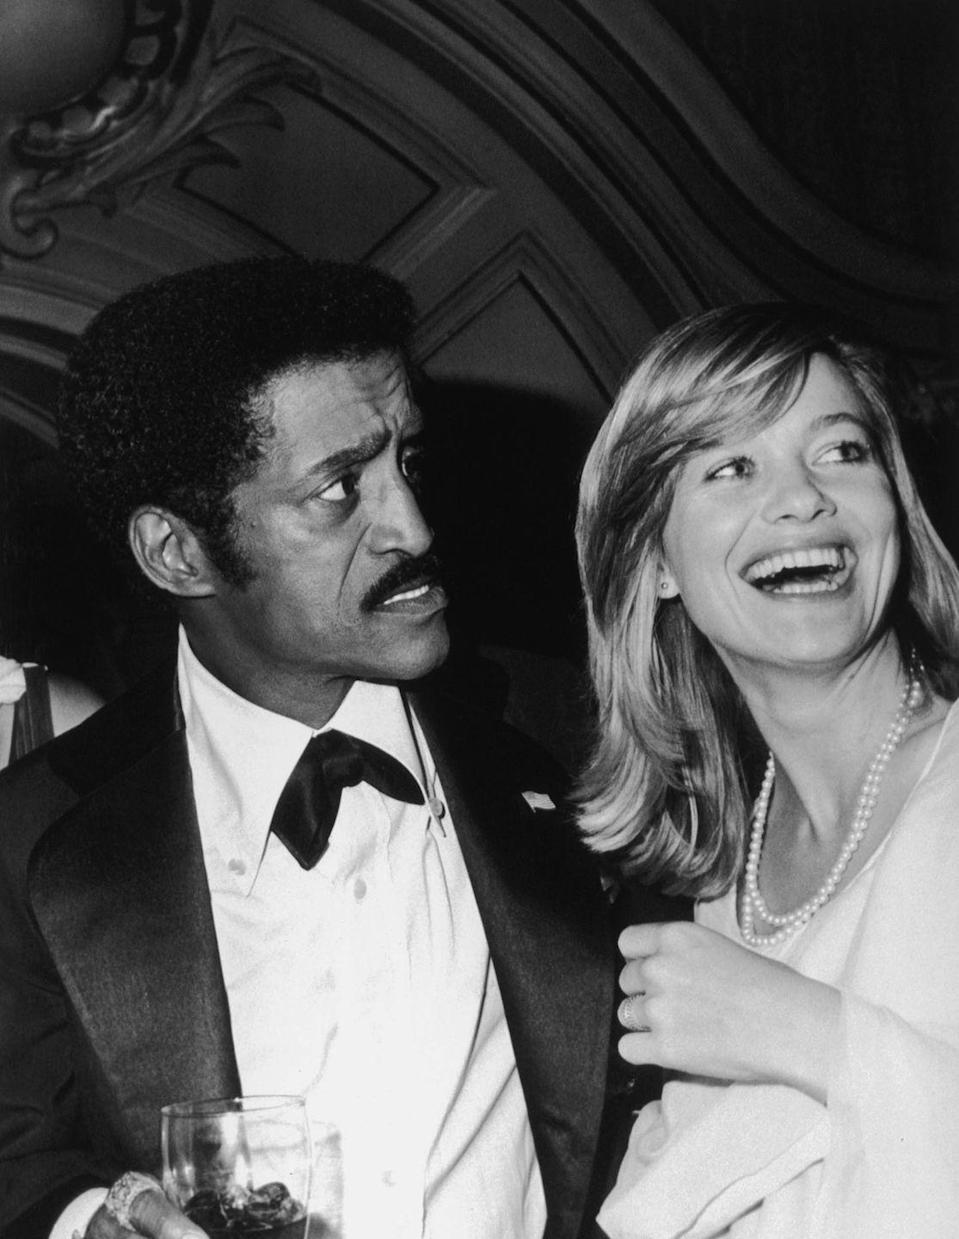 <p>Sammy Davis Jr. and Judy Geeson at a party, October 1976.</p>